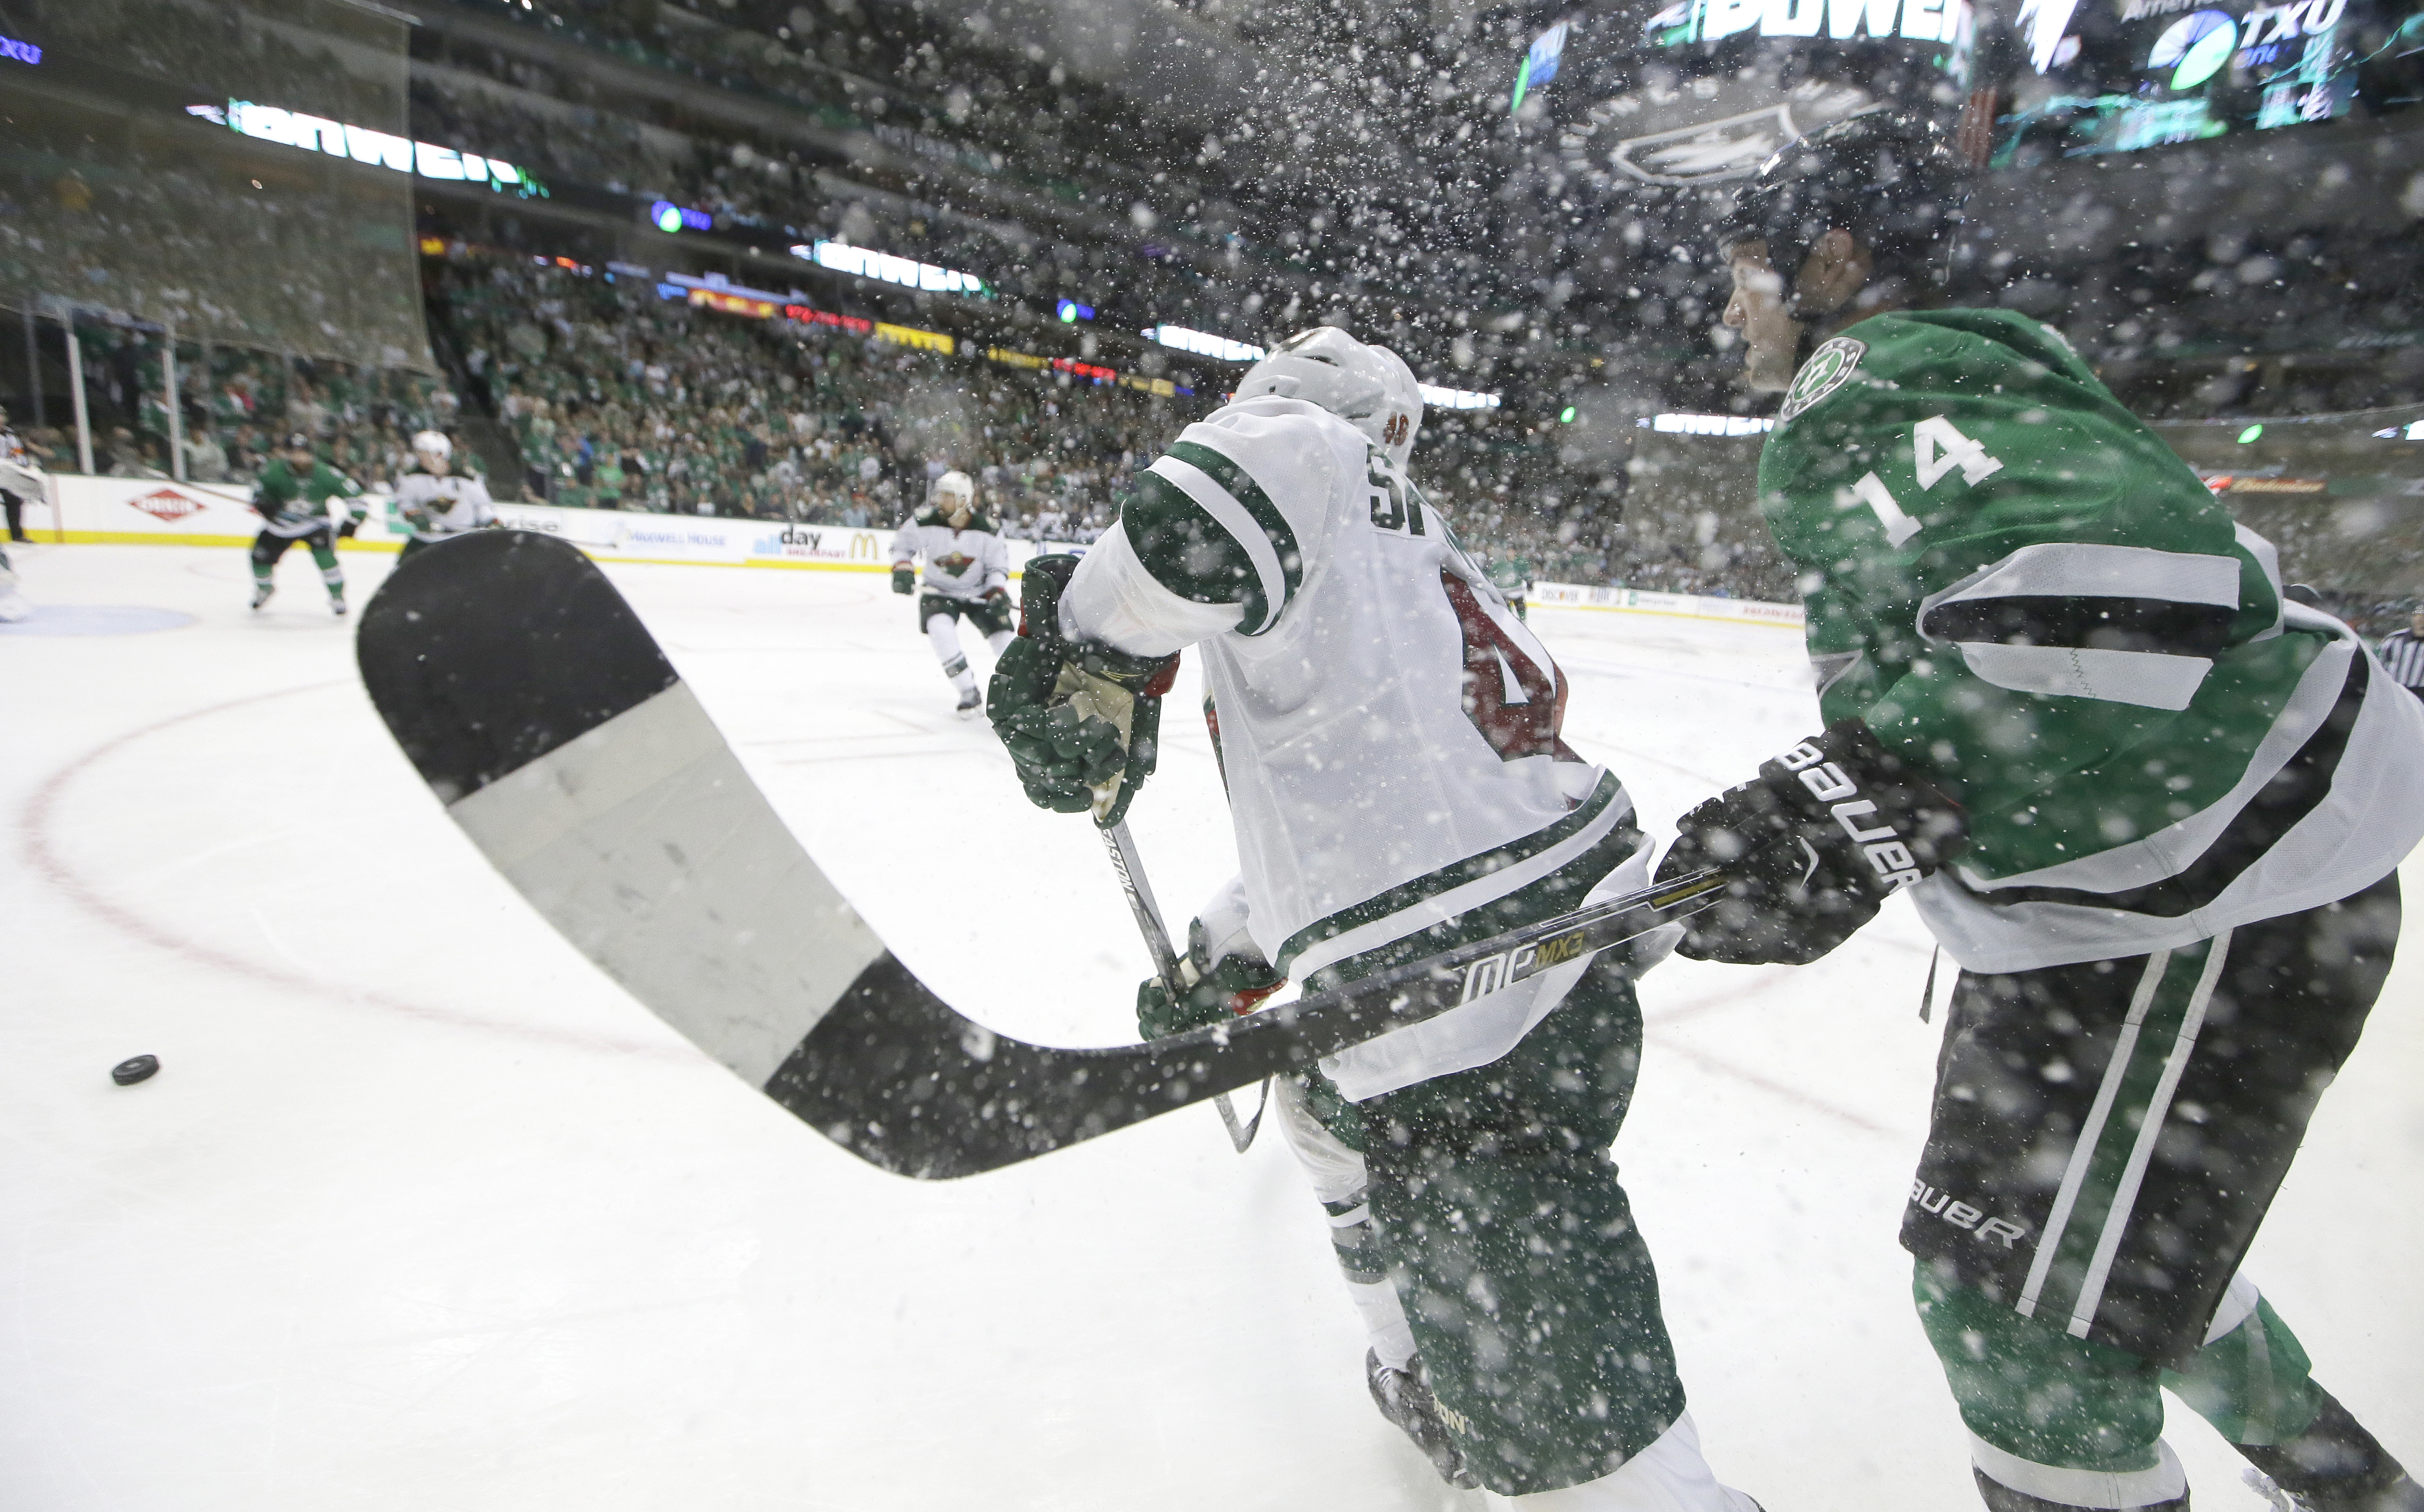 Dallas Stars left wing Jamie Benn (14) and Minnesota Wild defenseman Jared Spurgeon (46) chase the puck during the third period in Game 2 in the first round of the NHL Stanley Cup playoffs Saturday, April 16, 2016, in Dallas. (AP Photo/LM Otero)